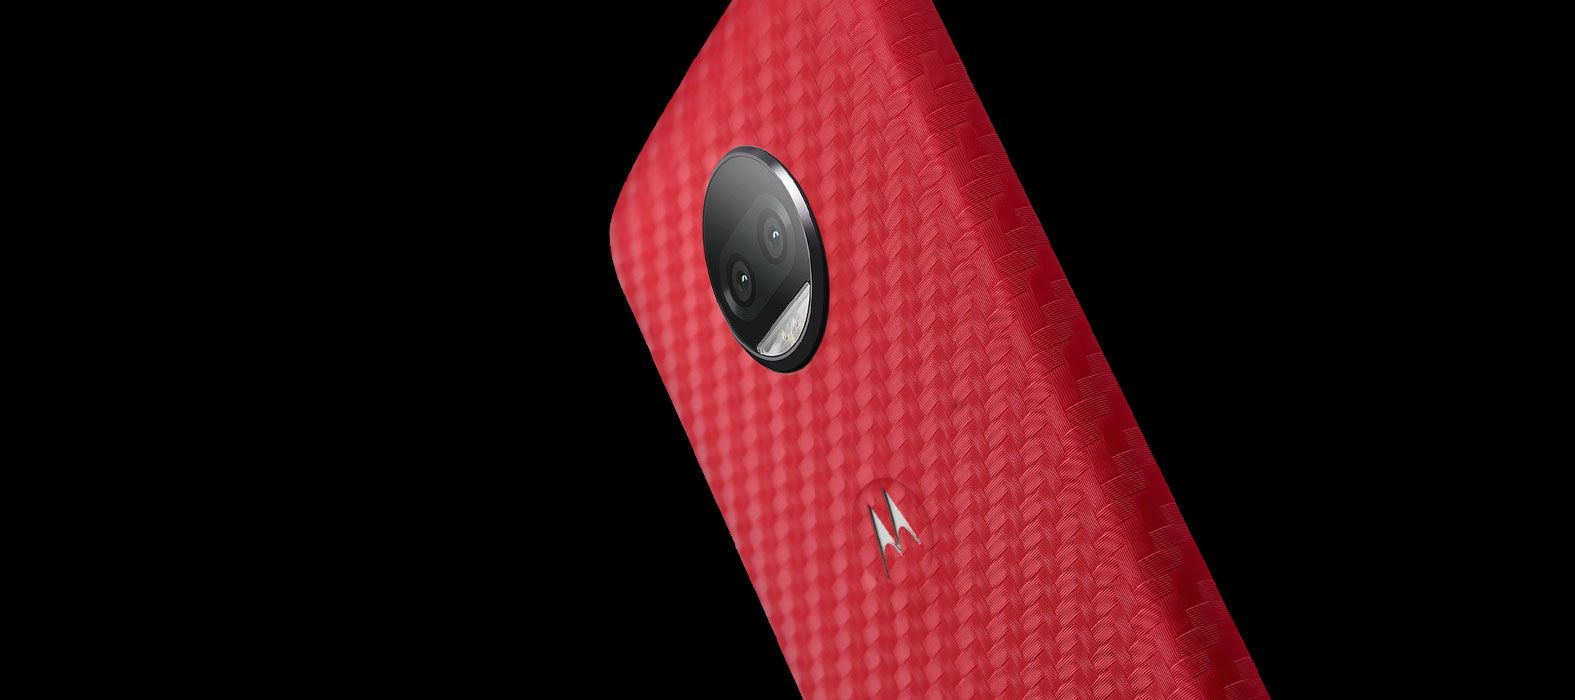 Moto G5S Plus Wraps, Skins & Decals | Red Carbon Fiber Skins